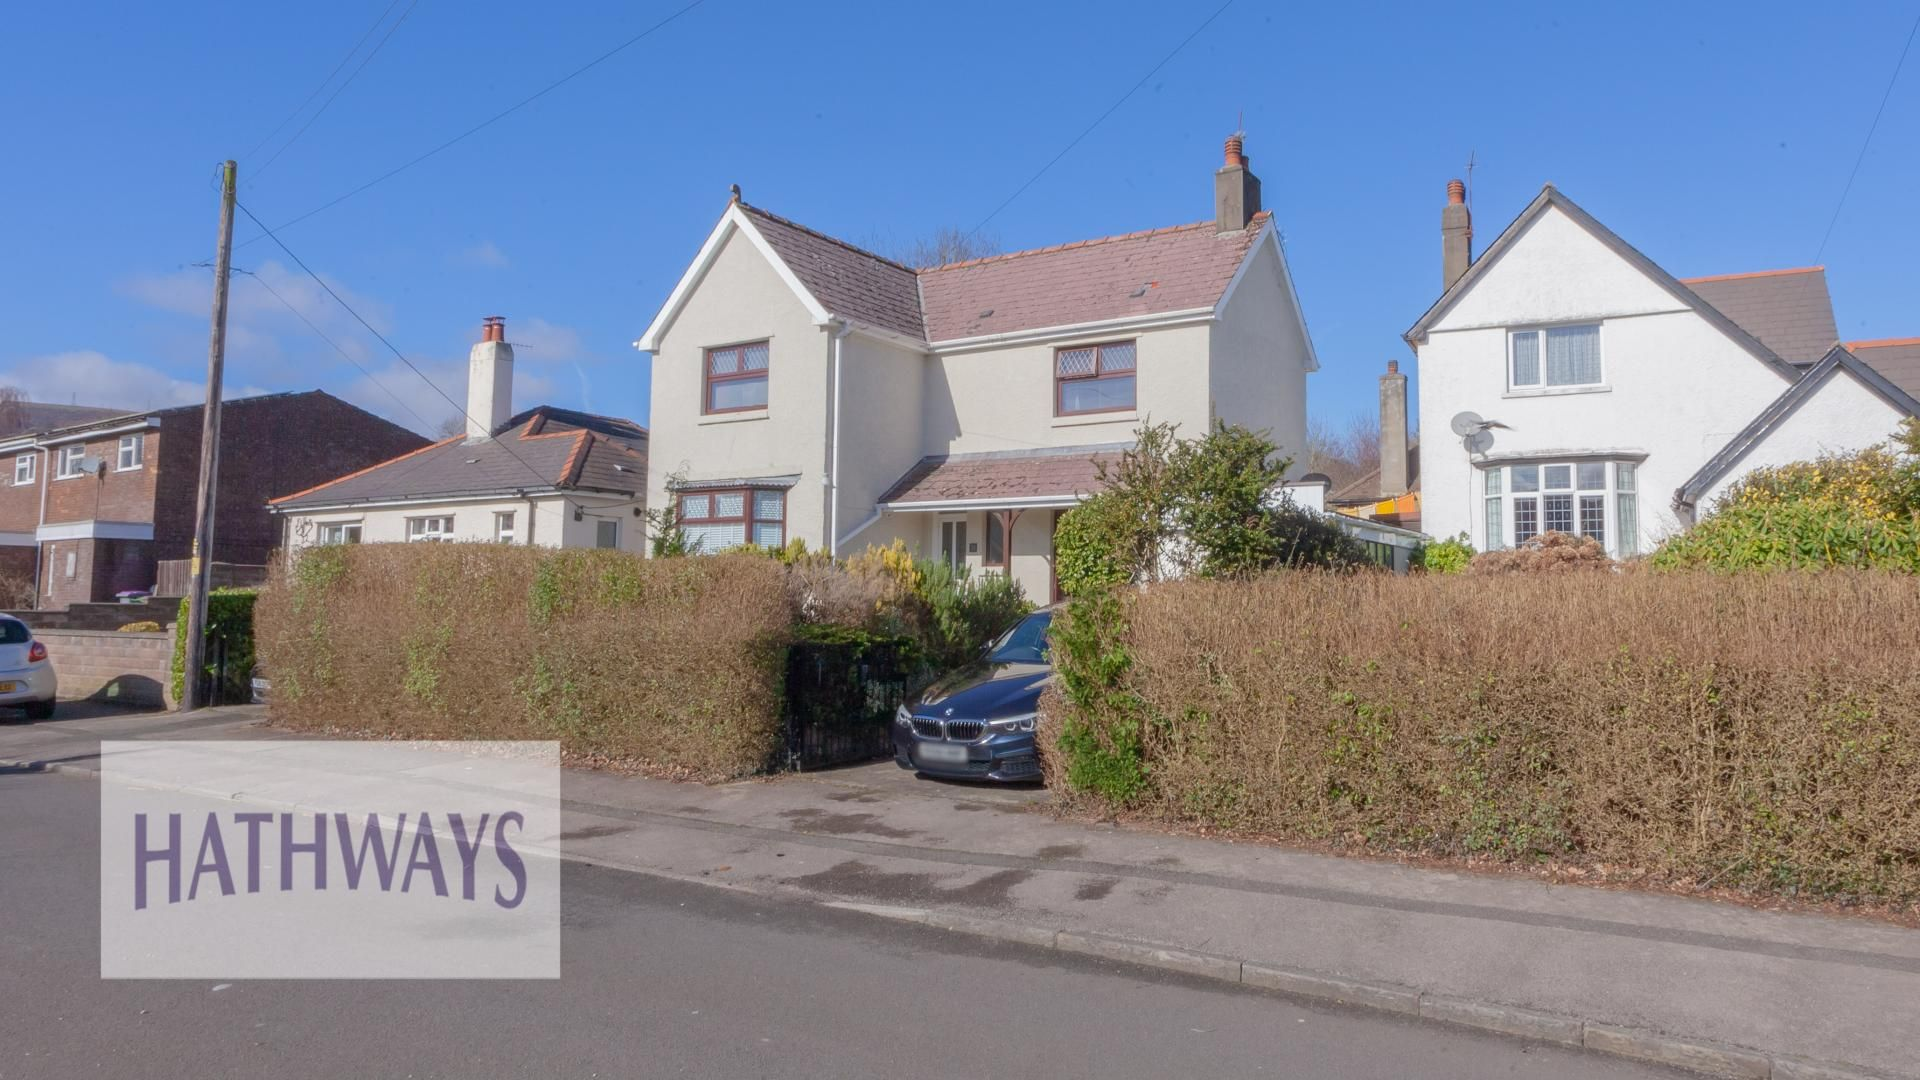 3 bed house for sale in Parc Avenue, NP44